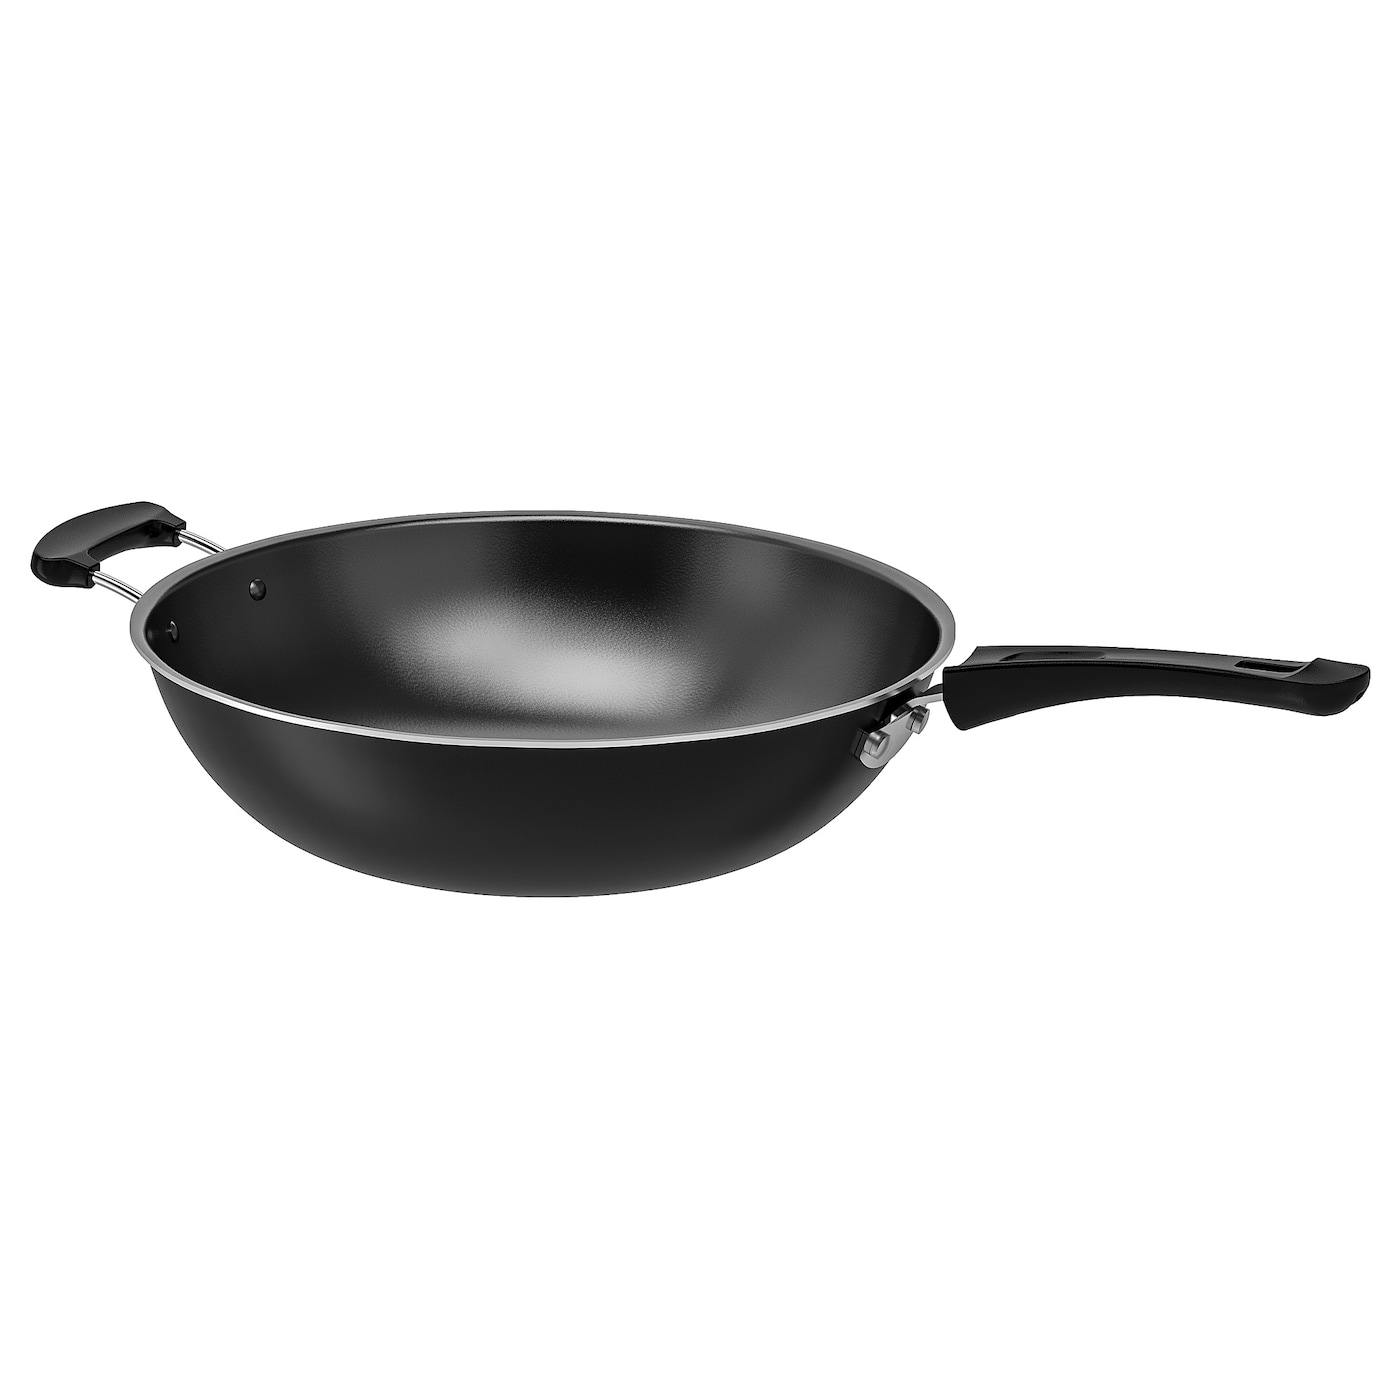 IKEA TOLERANT wok The pan's low weight makes it easy to handle when filled with food.